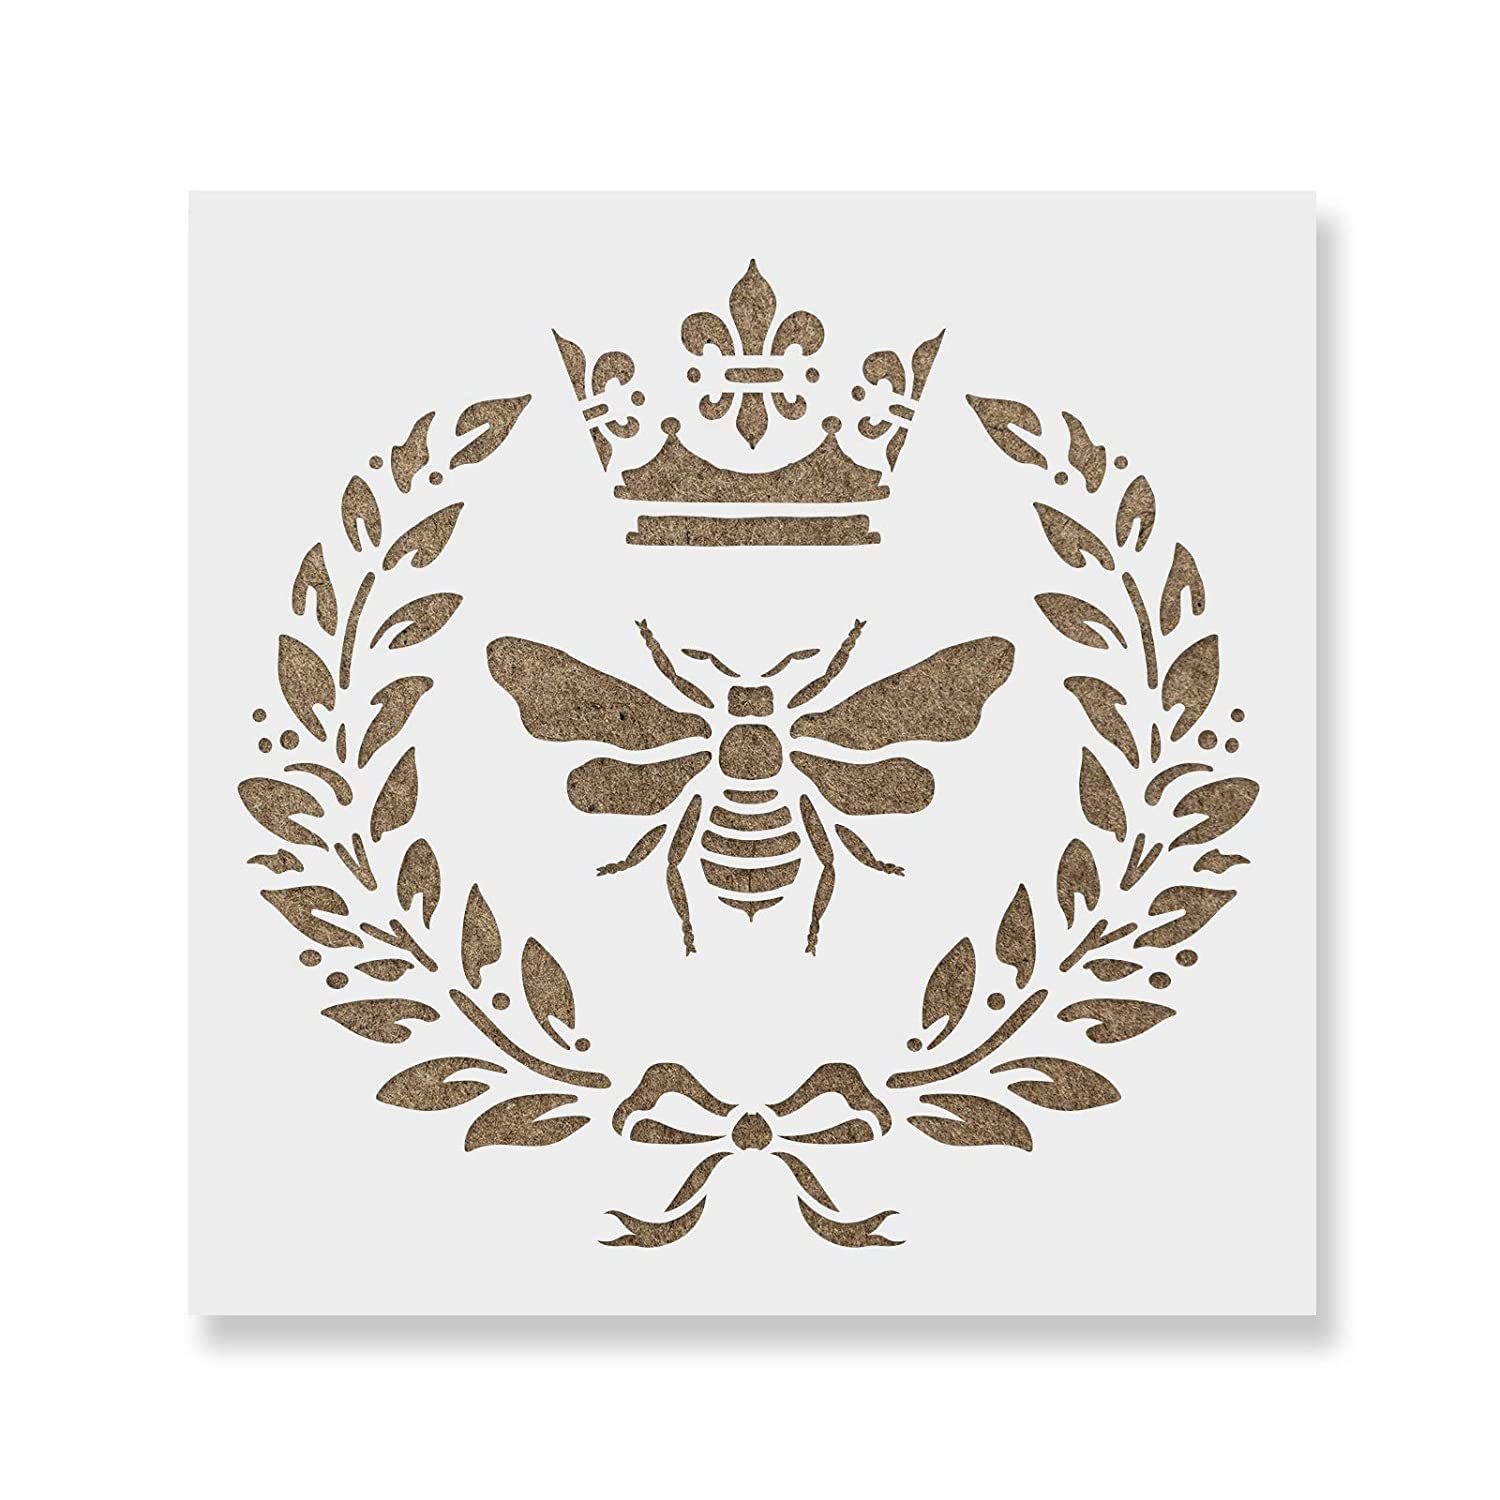 Royal Bee Stencil Template for Walls and Crafts - Reusable Stencils for Painting in Small & Large Sizes Stencil Revolution